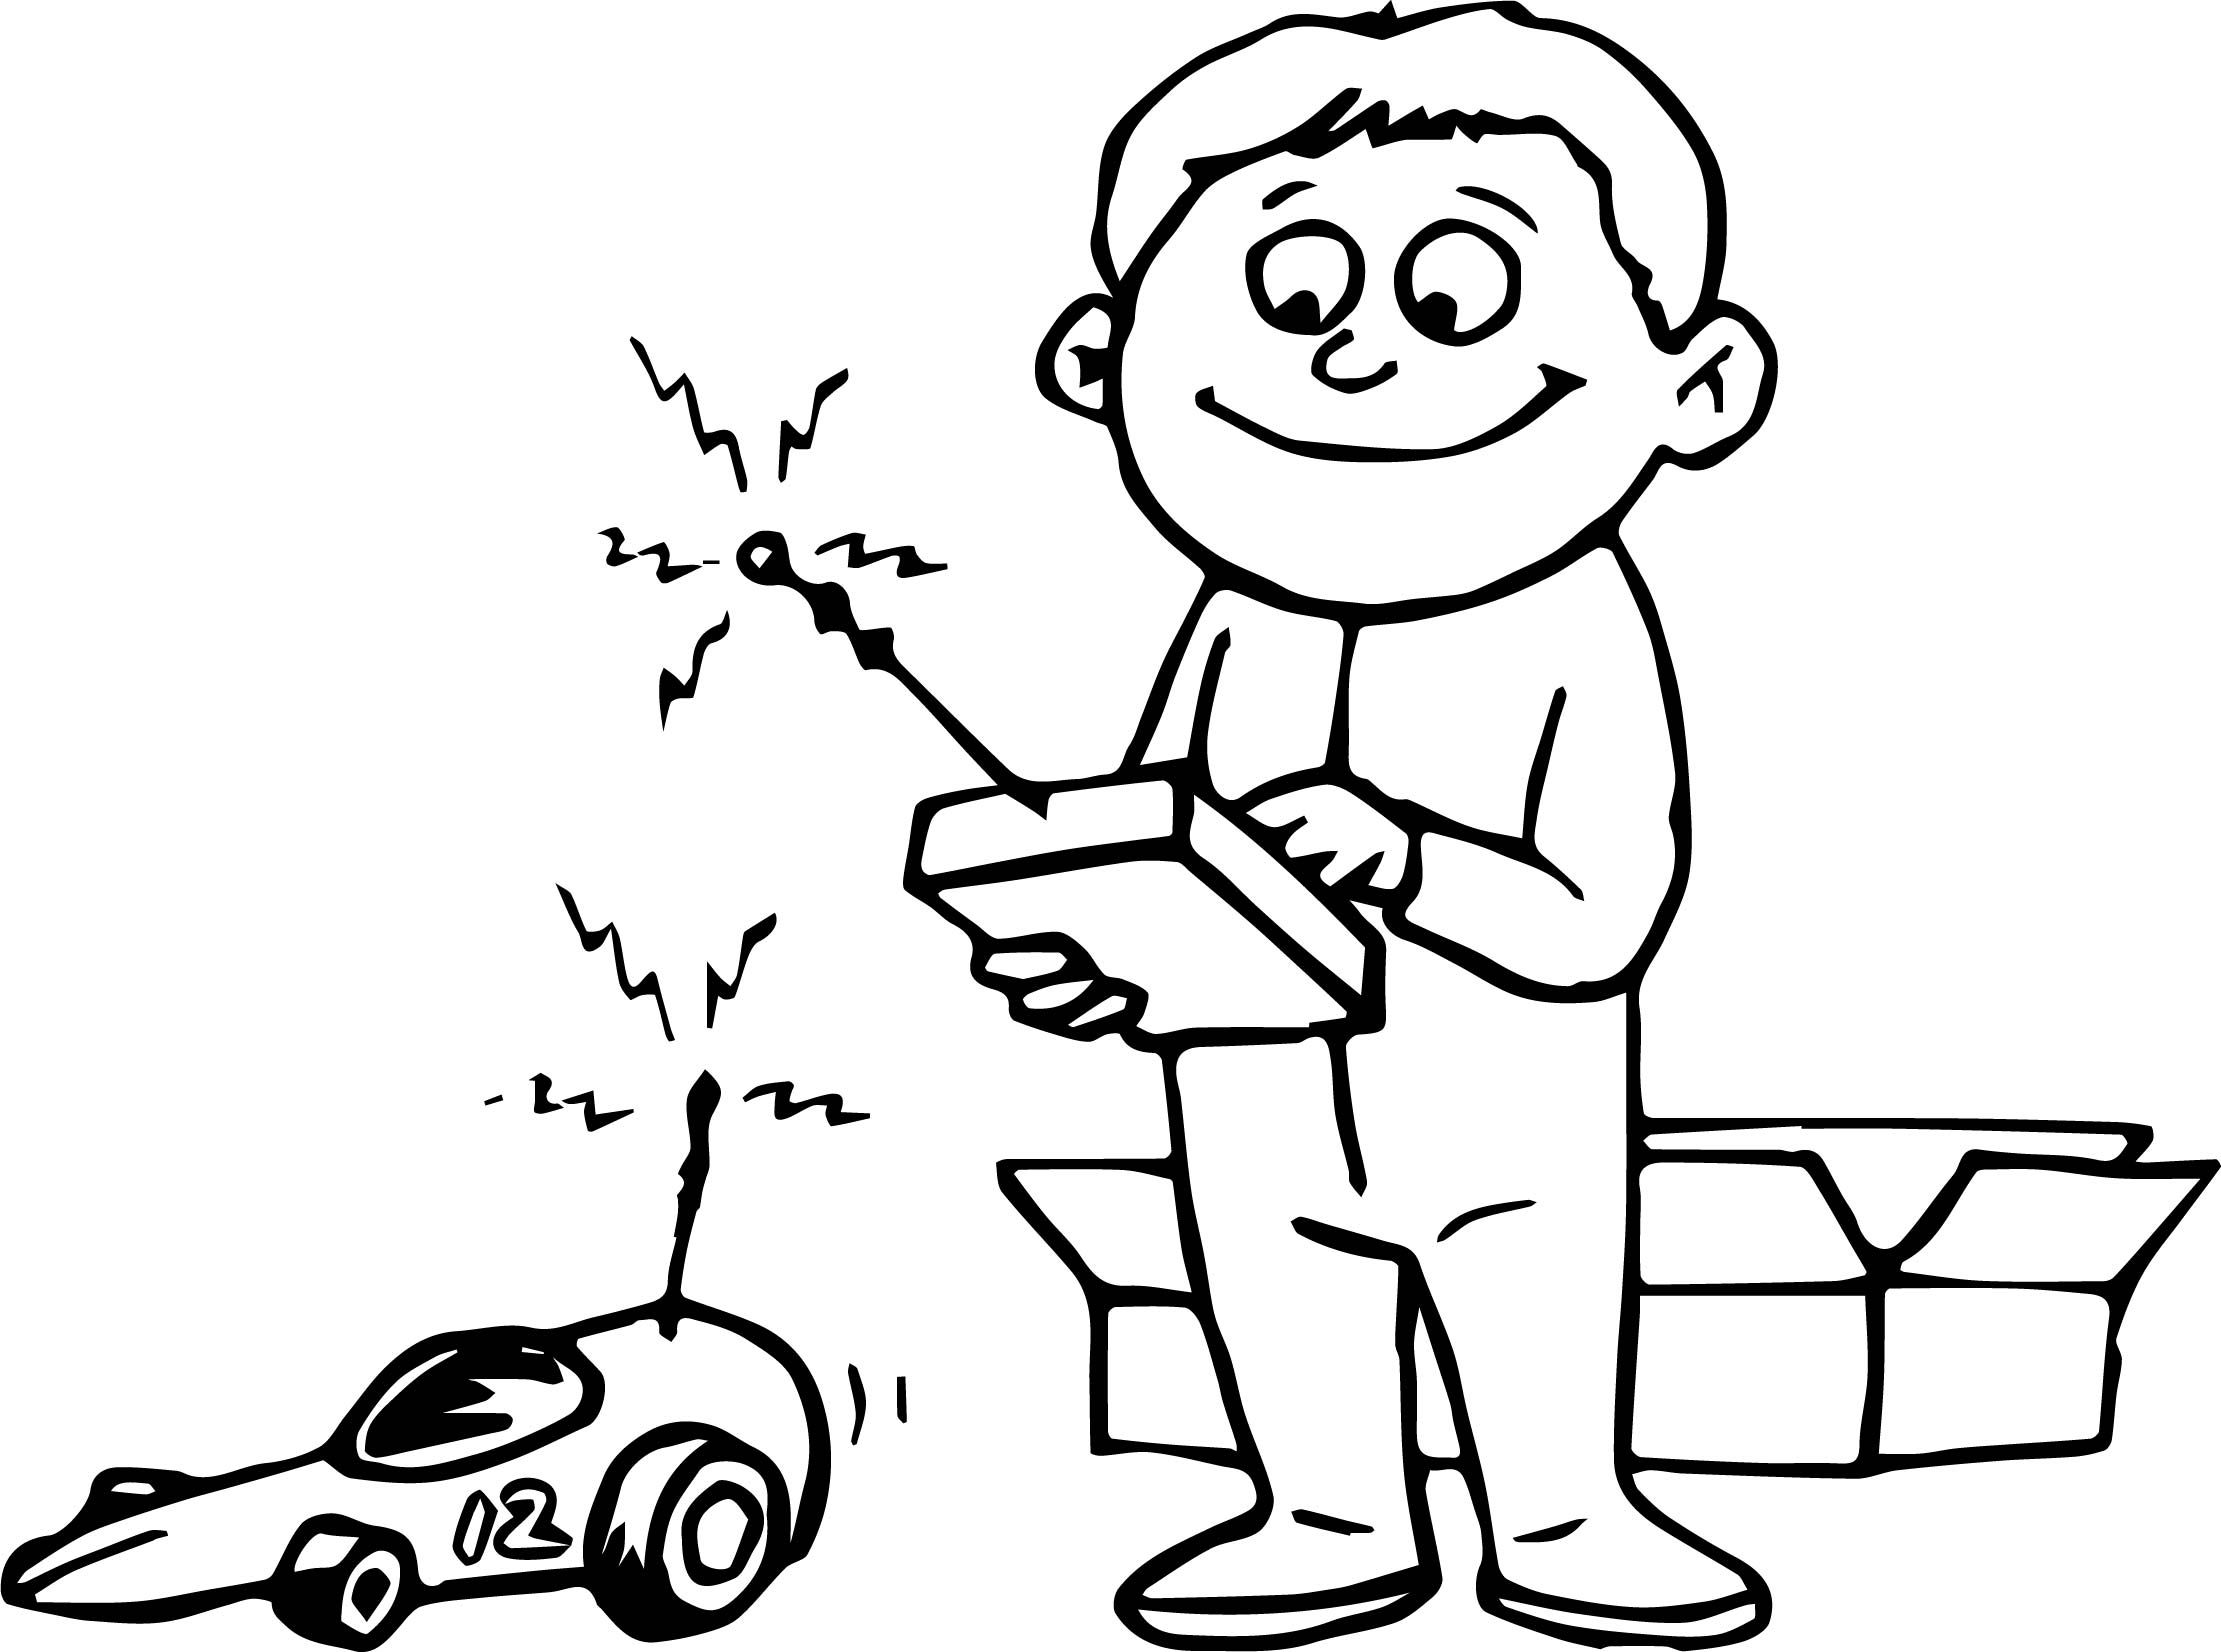 Awesome Remote Toy Car Child Coloring Page Coloring Pages Coloring Pages For Kids Coloring Sheets For Kids